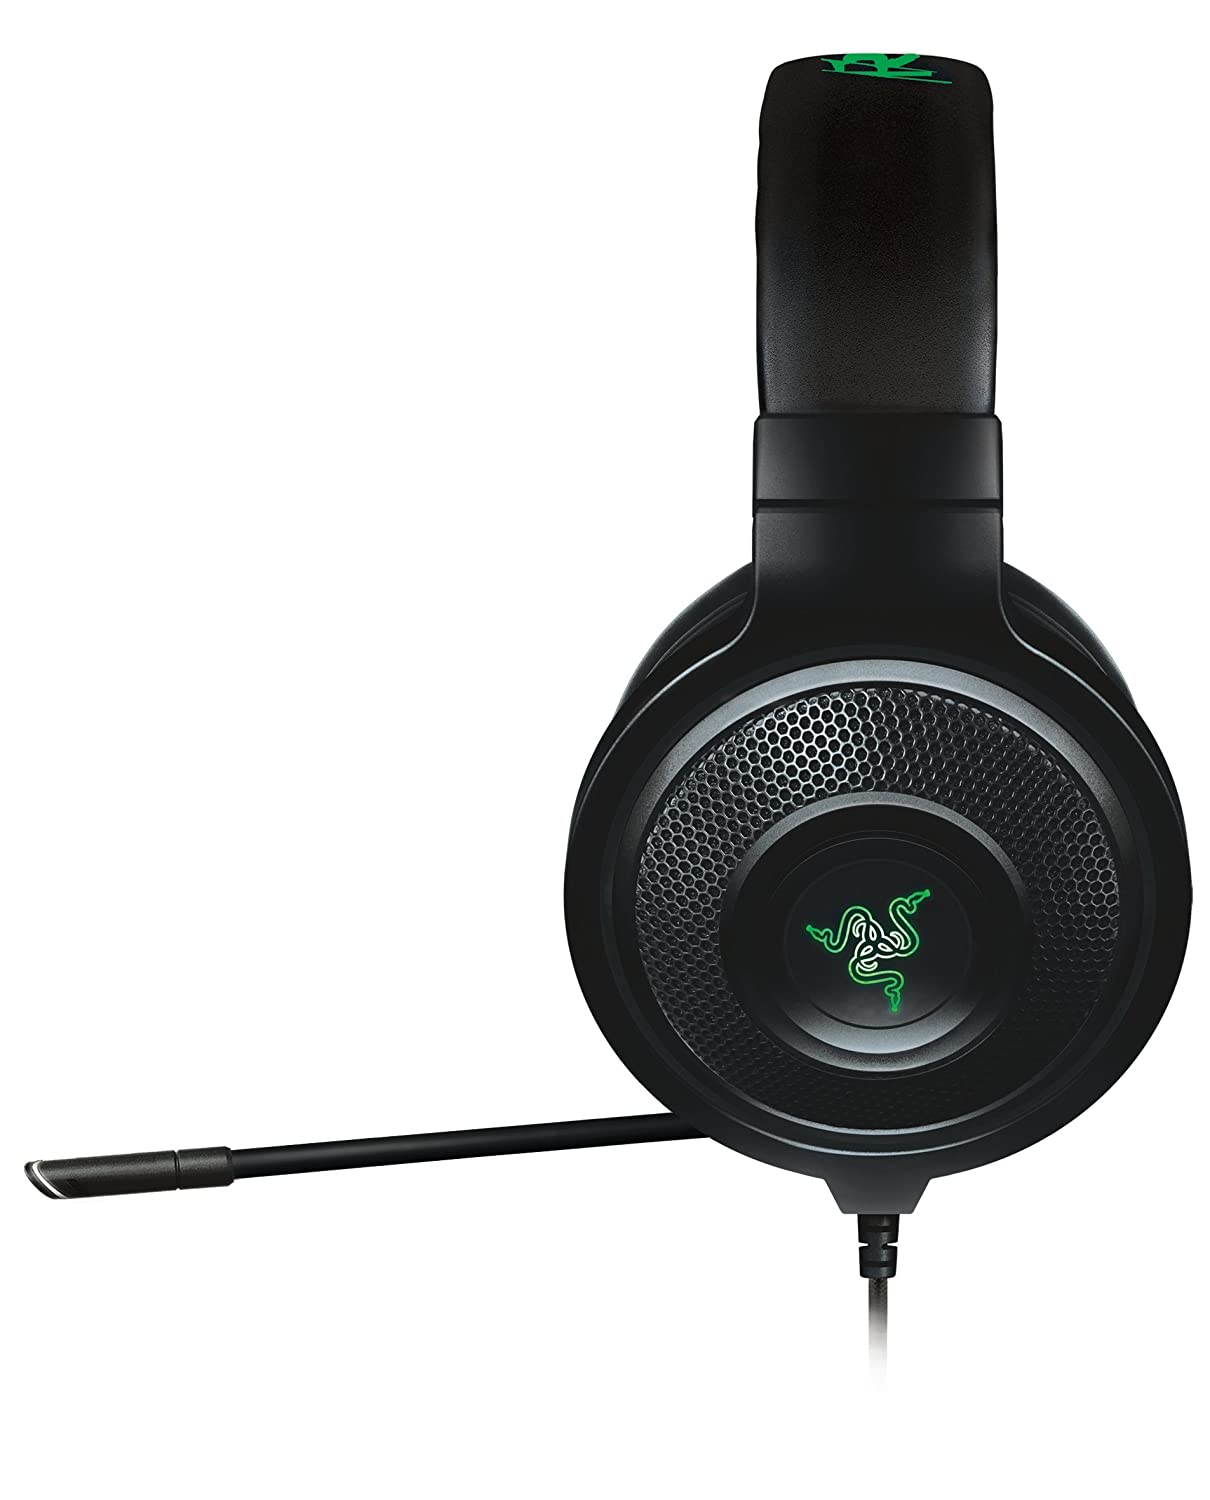 71qVWrT1saL._SL1500_ amazon in buy razer kraken 7 1 chroma sound usb gaming headset razer kraken pro wiring diagram at gsmx.co